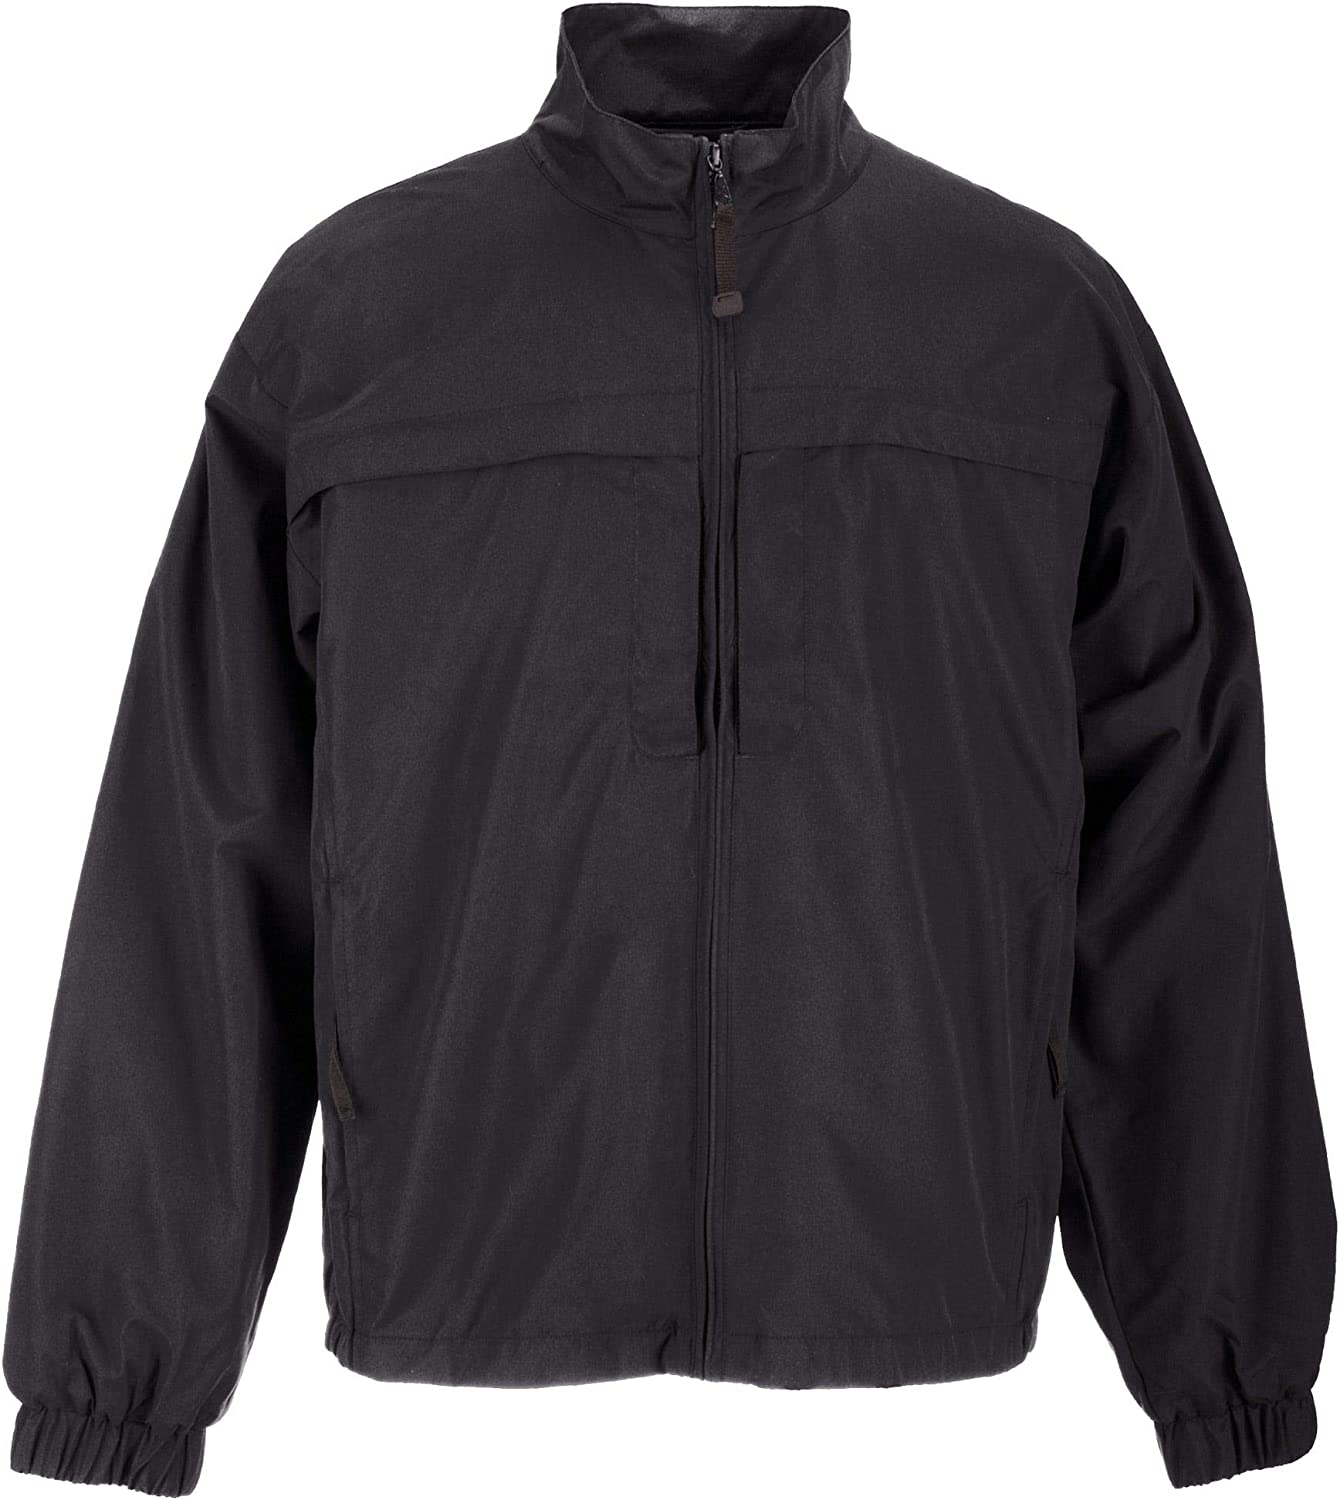 5.11 Tactical Men's Response Lightweight Jacket, Ready Pocket, Easy-Store Design, Style 48016